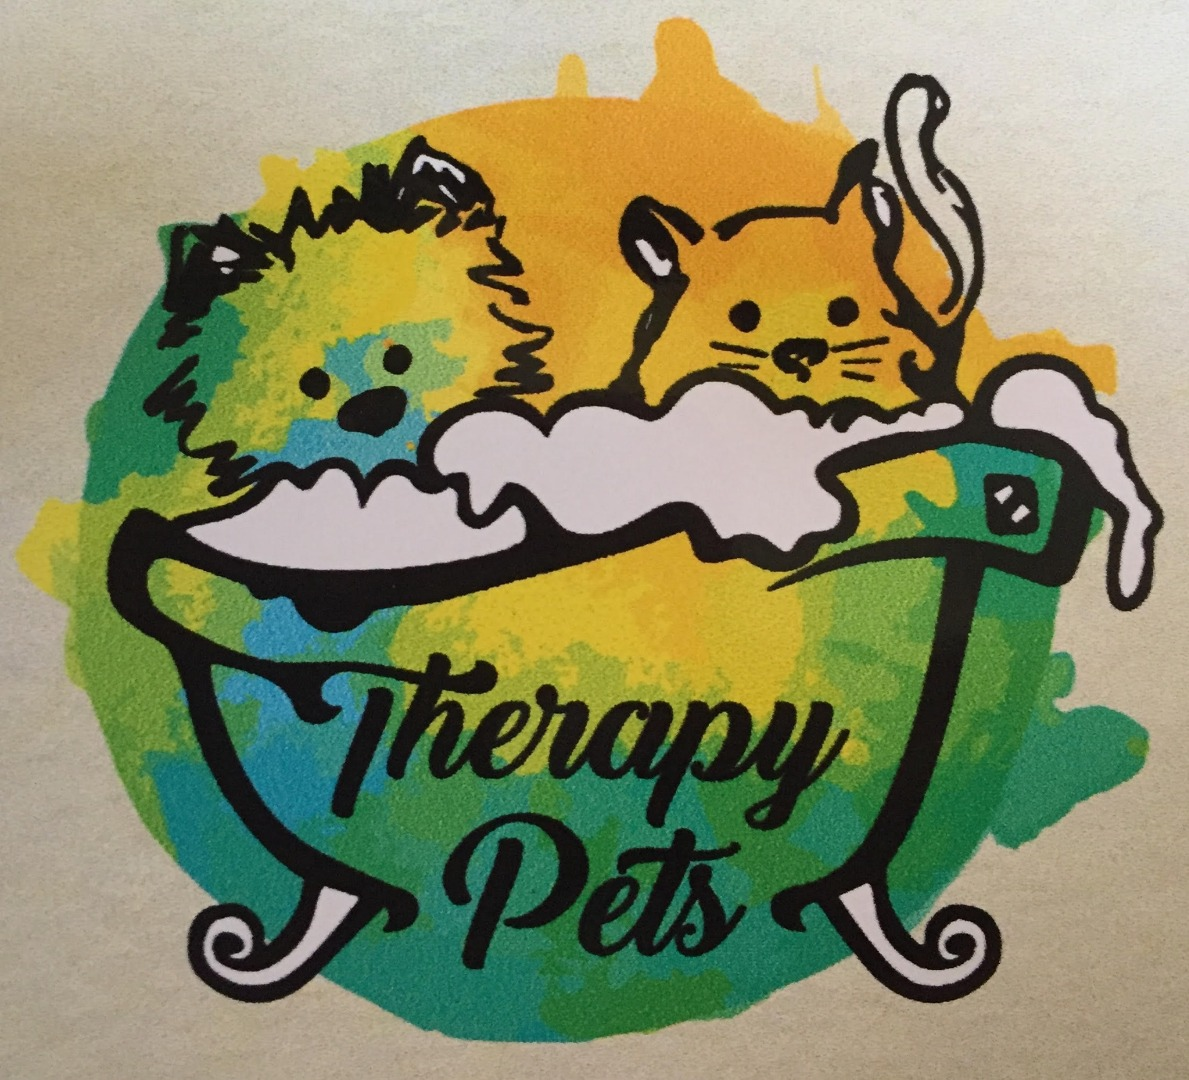 THERAPYPETS